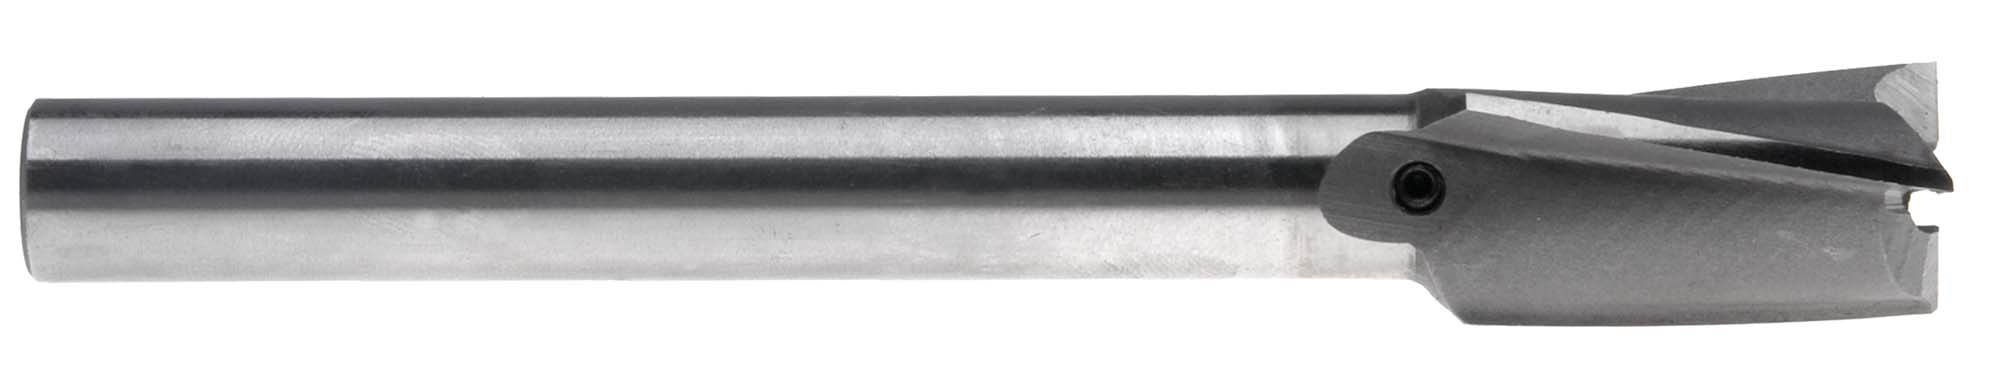 "15/16"" Straight Shank Counterbore, Interchangeable Pilot Type, High Speed Steel"